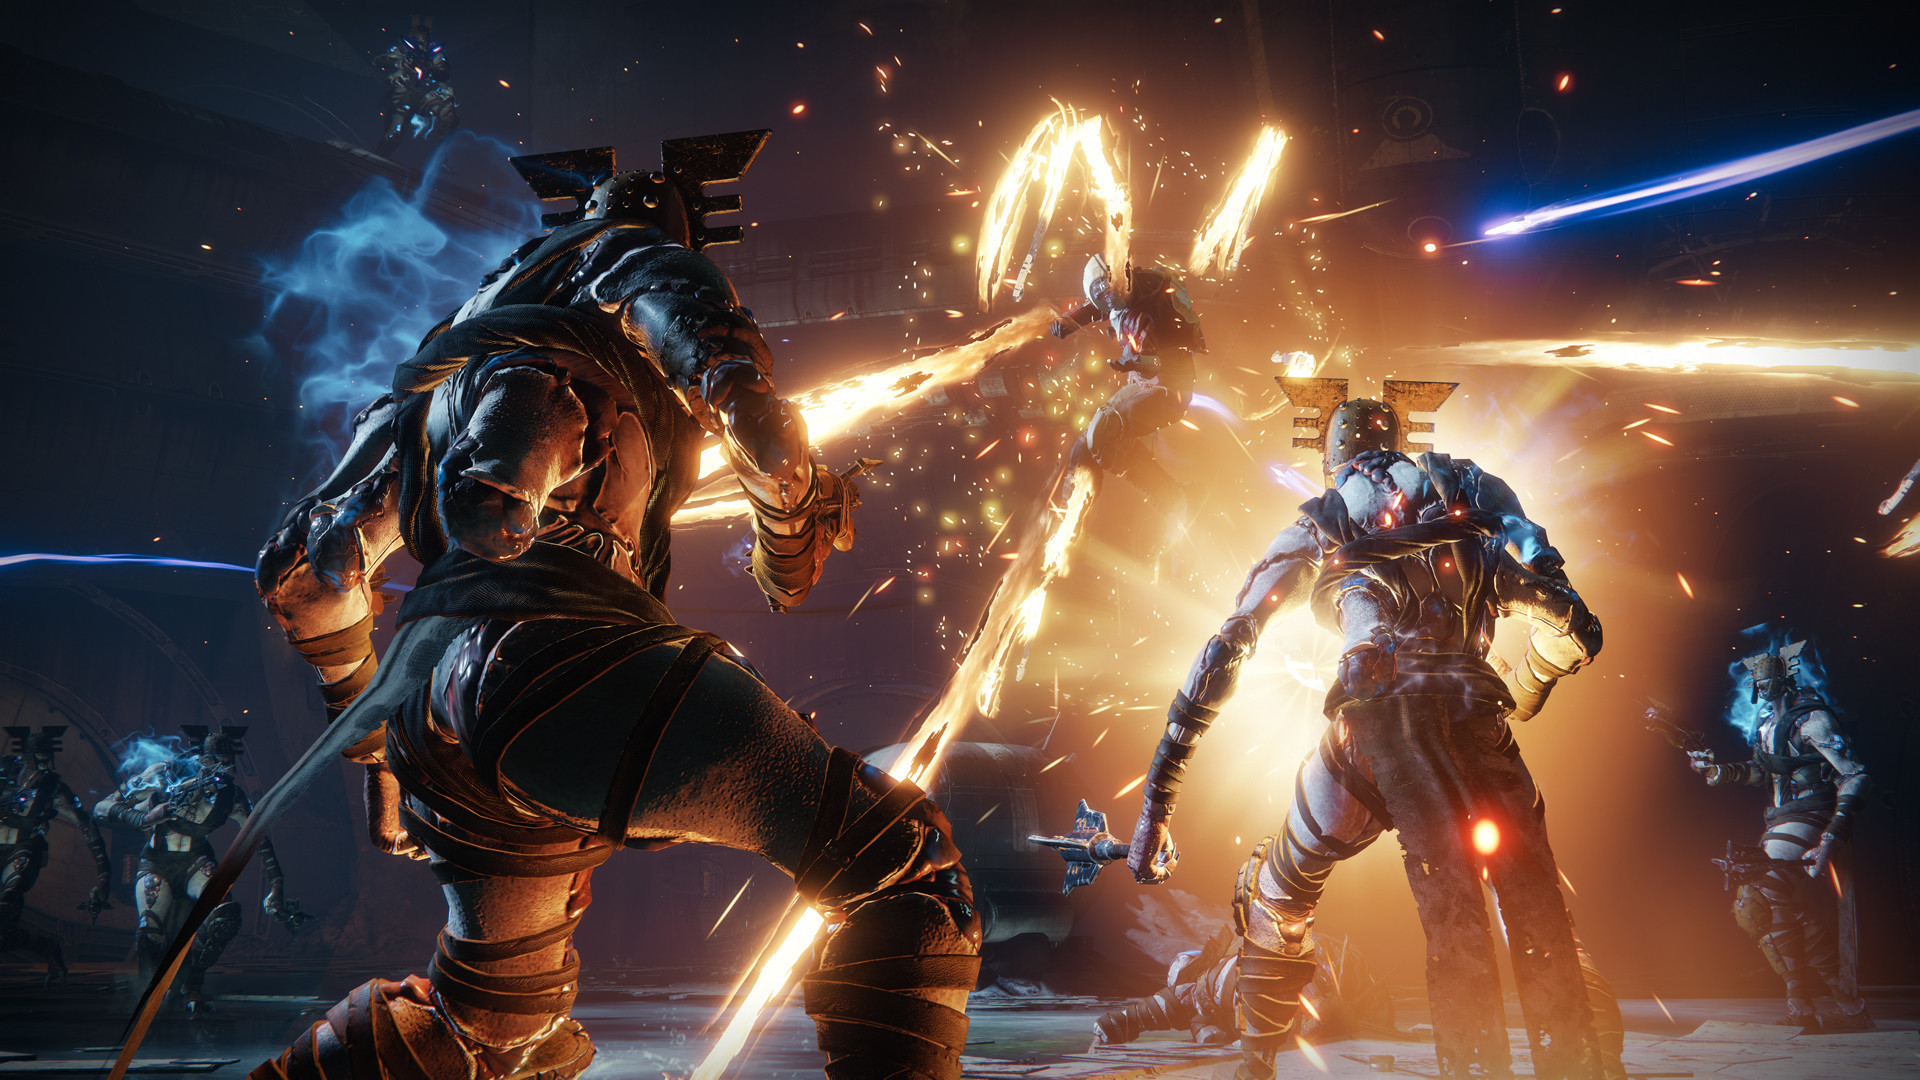 It's looking like Destiny 2 could be bracing for another new dawn in Season 11.